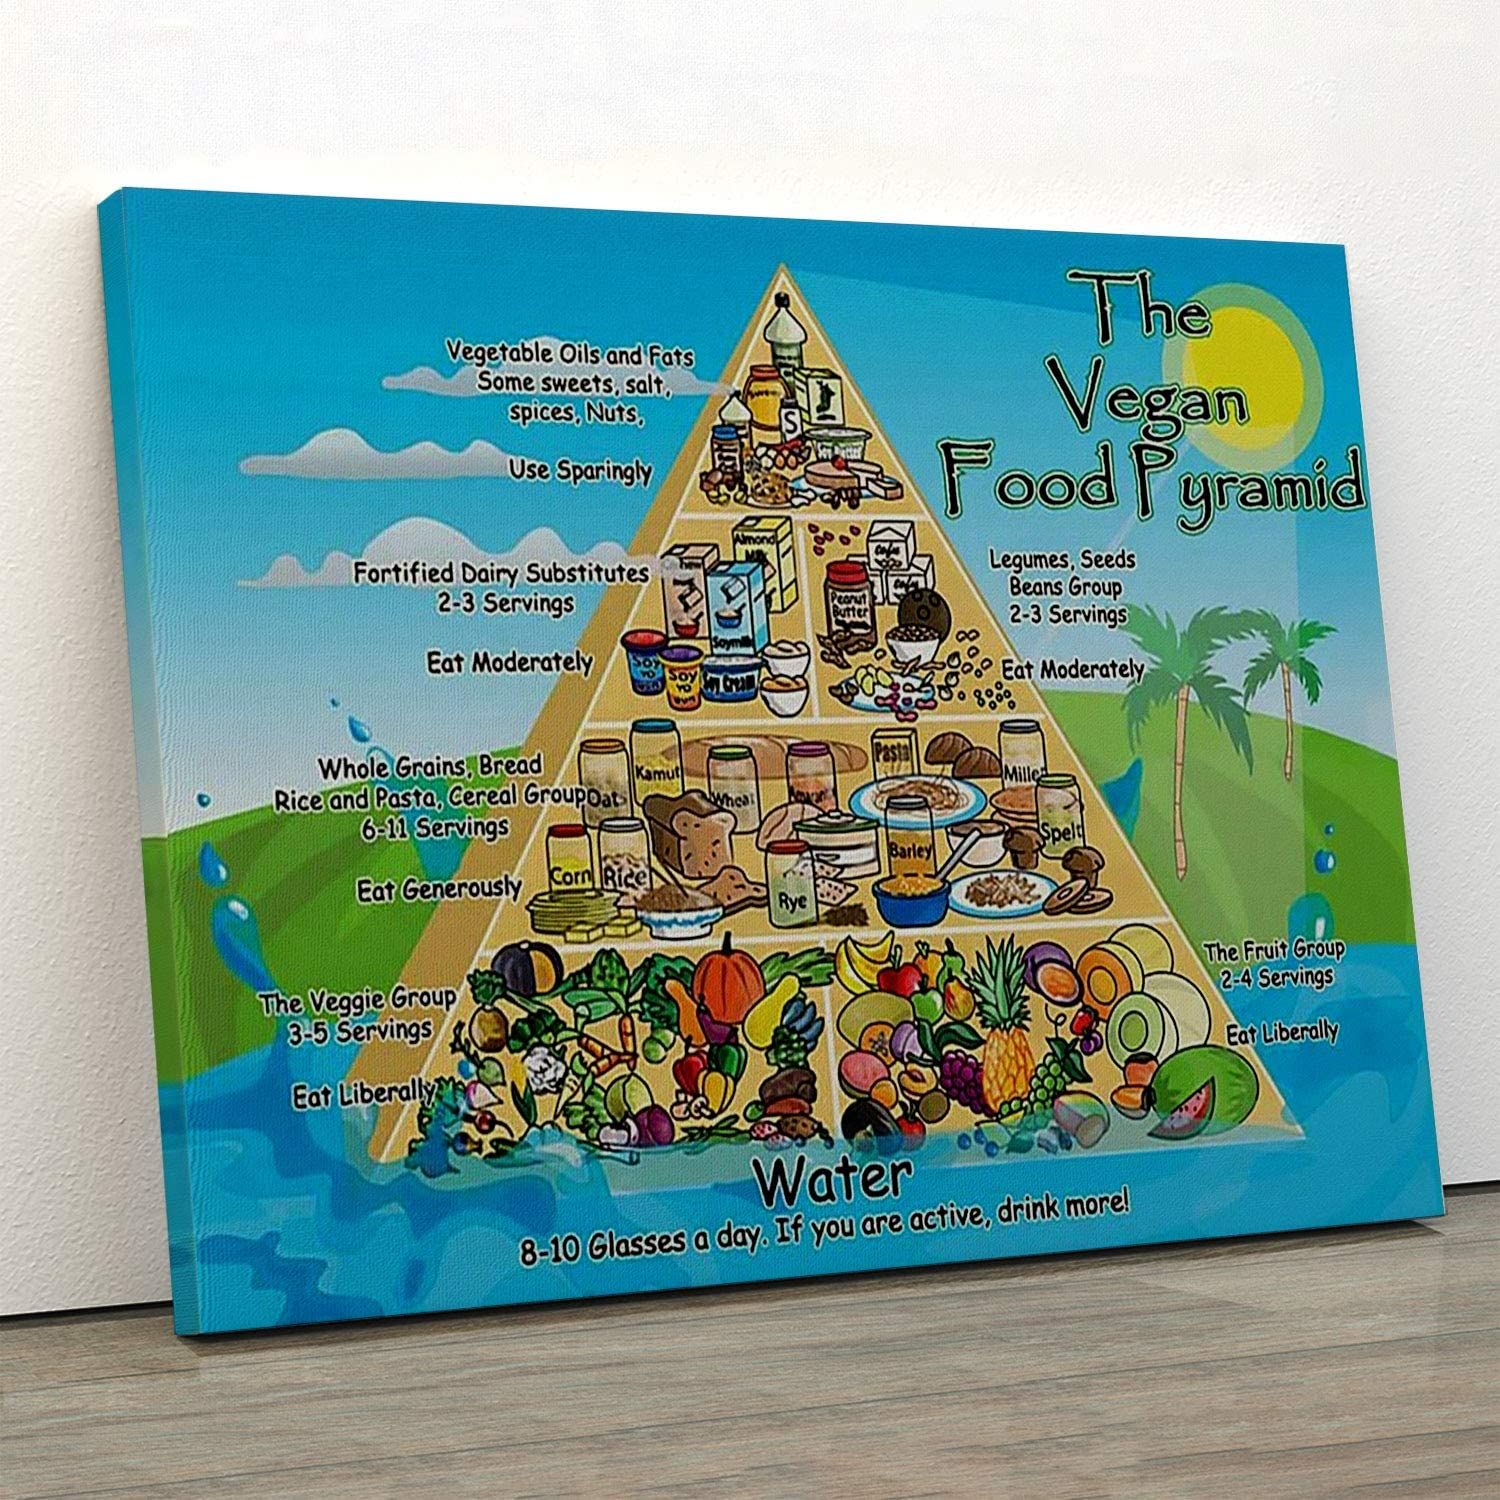 AMD PRINT Vegan Canvas Wall Art Vegan Food Pyramid Nutrition Tower Abstract Wall Art for Living Room Home Decor Painting Vintage Motivational